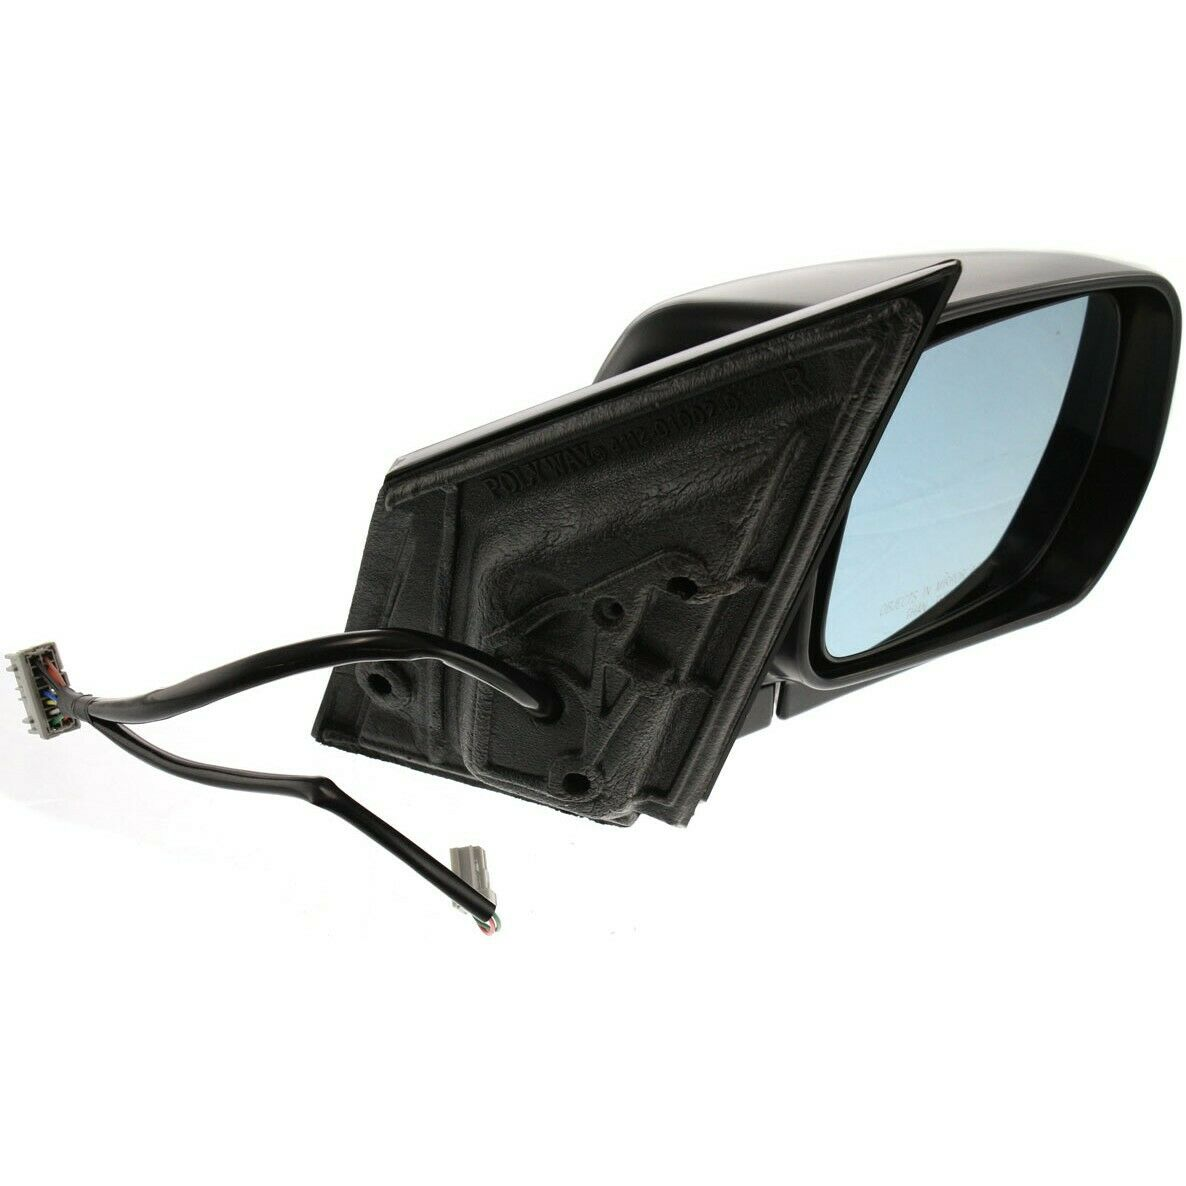 Power Passenger Right Side Mirror For 2002-2006 Acura MDX